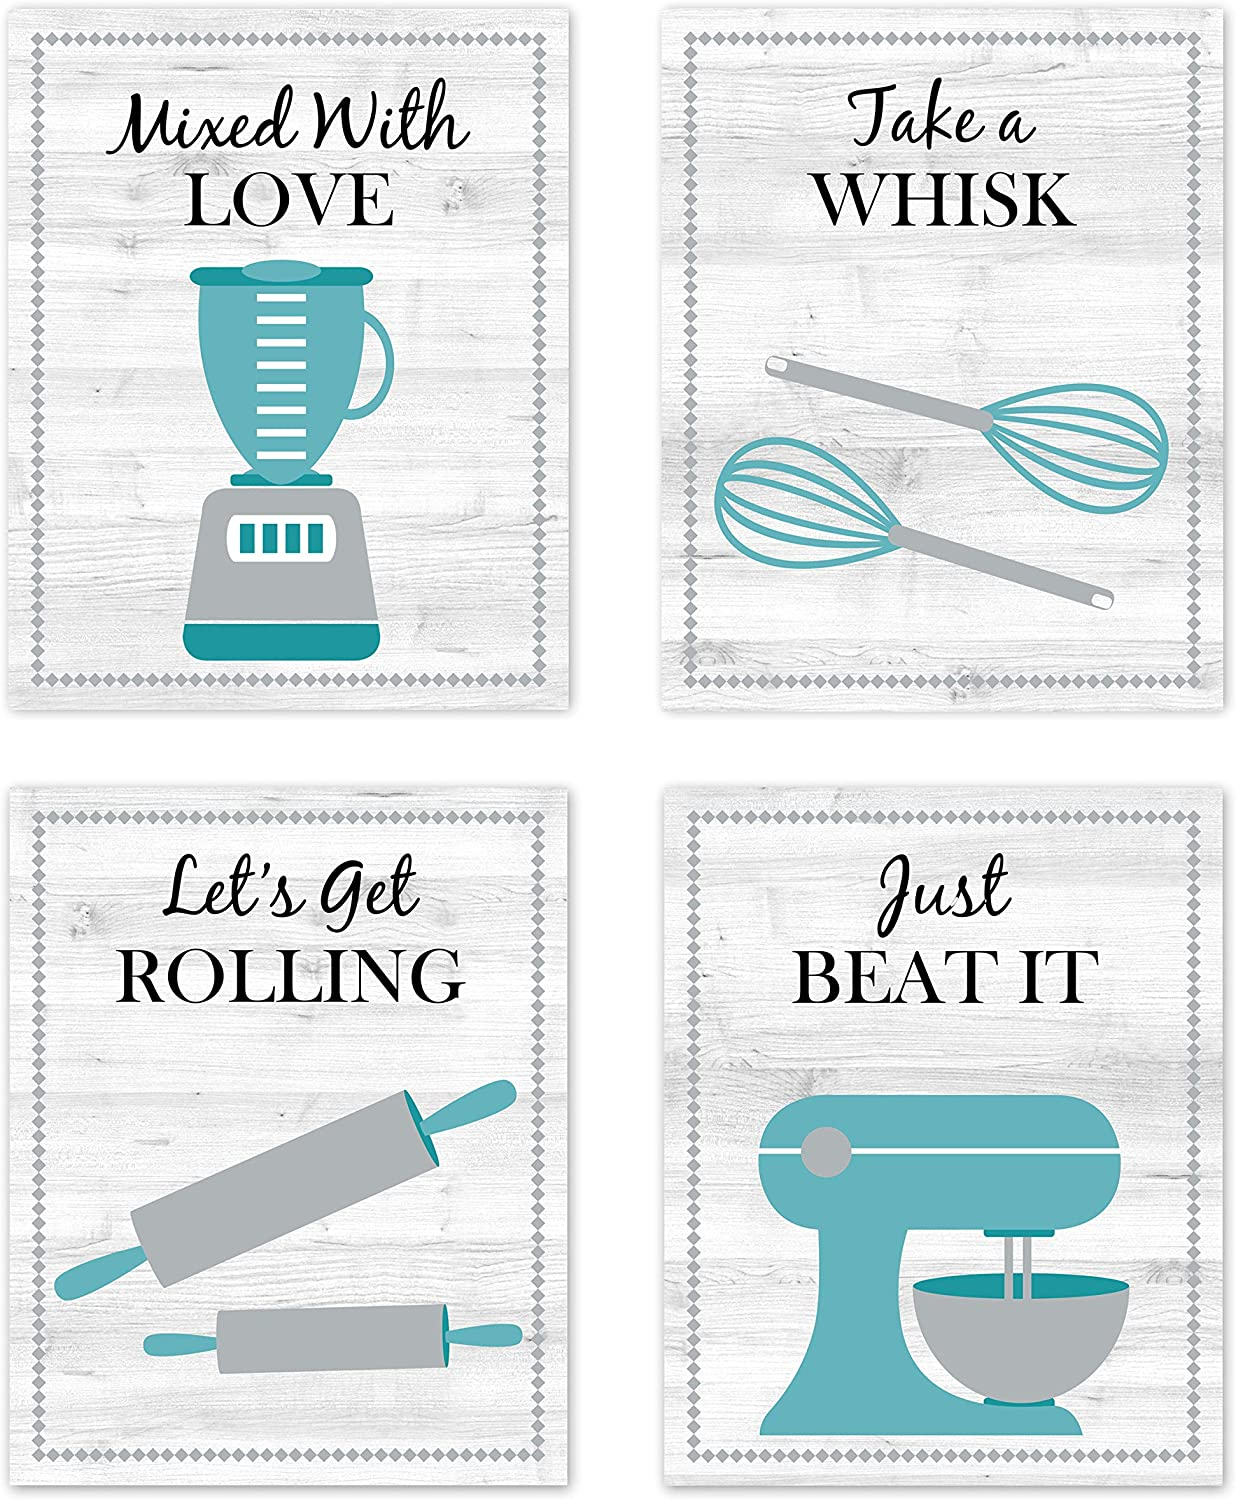 Turquoise Teal Blue, Black, Gray and White Retro Vintage Inspirational Kitchen Restaurant Utensil Wall Art Baking Chef Cooking Wood Grain Prints Posters Signs Sets for Rustic Modern Farmhouse Country Home Dining Room Decor Decorations Funny Sayings Quotes Unframed 8x10